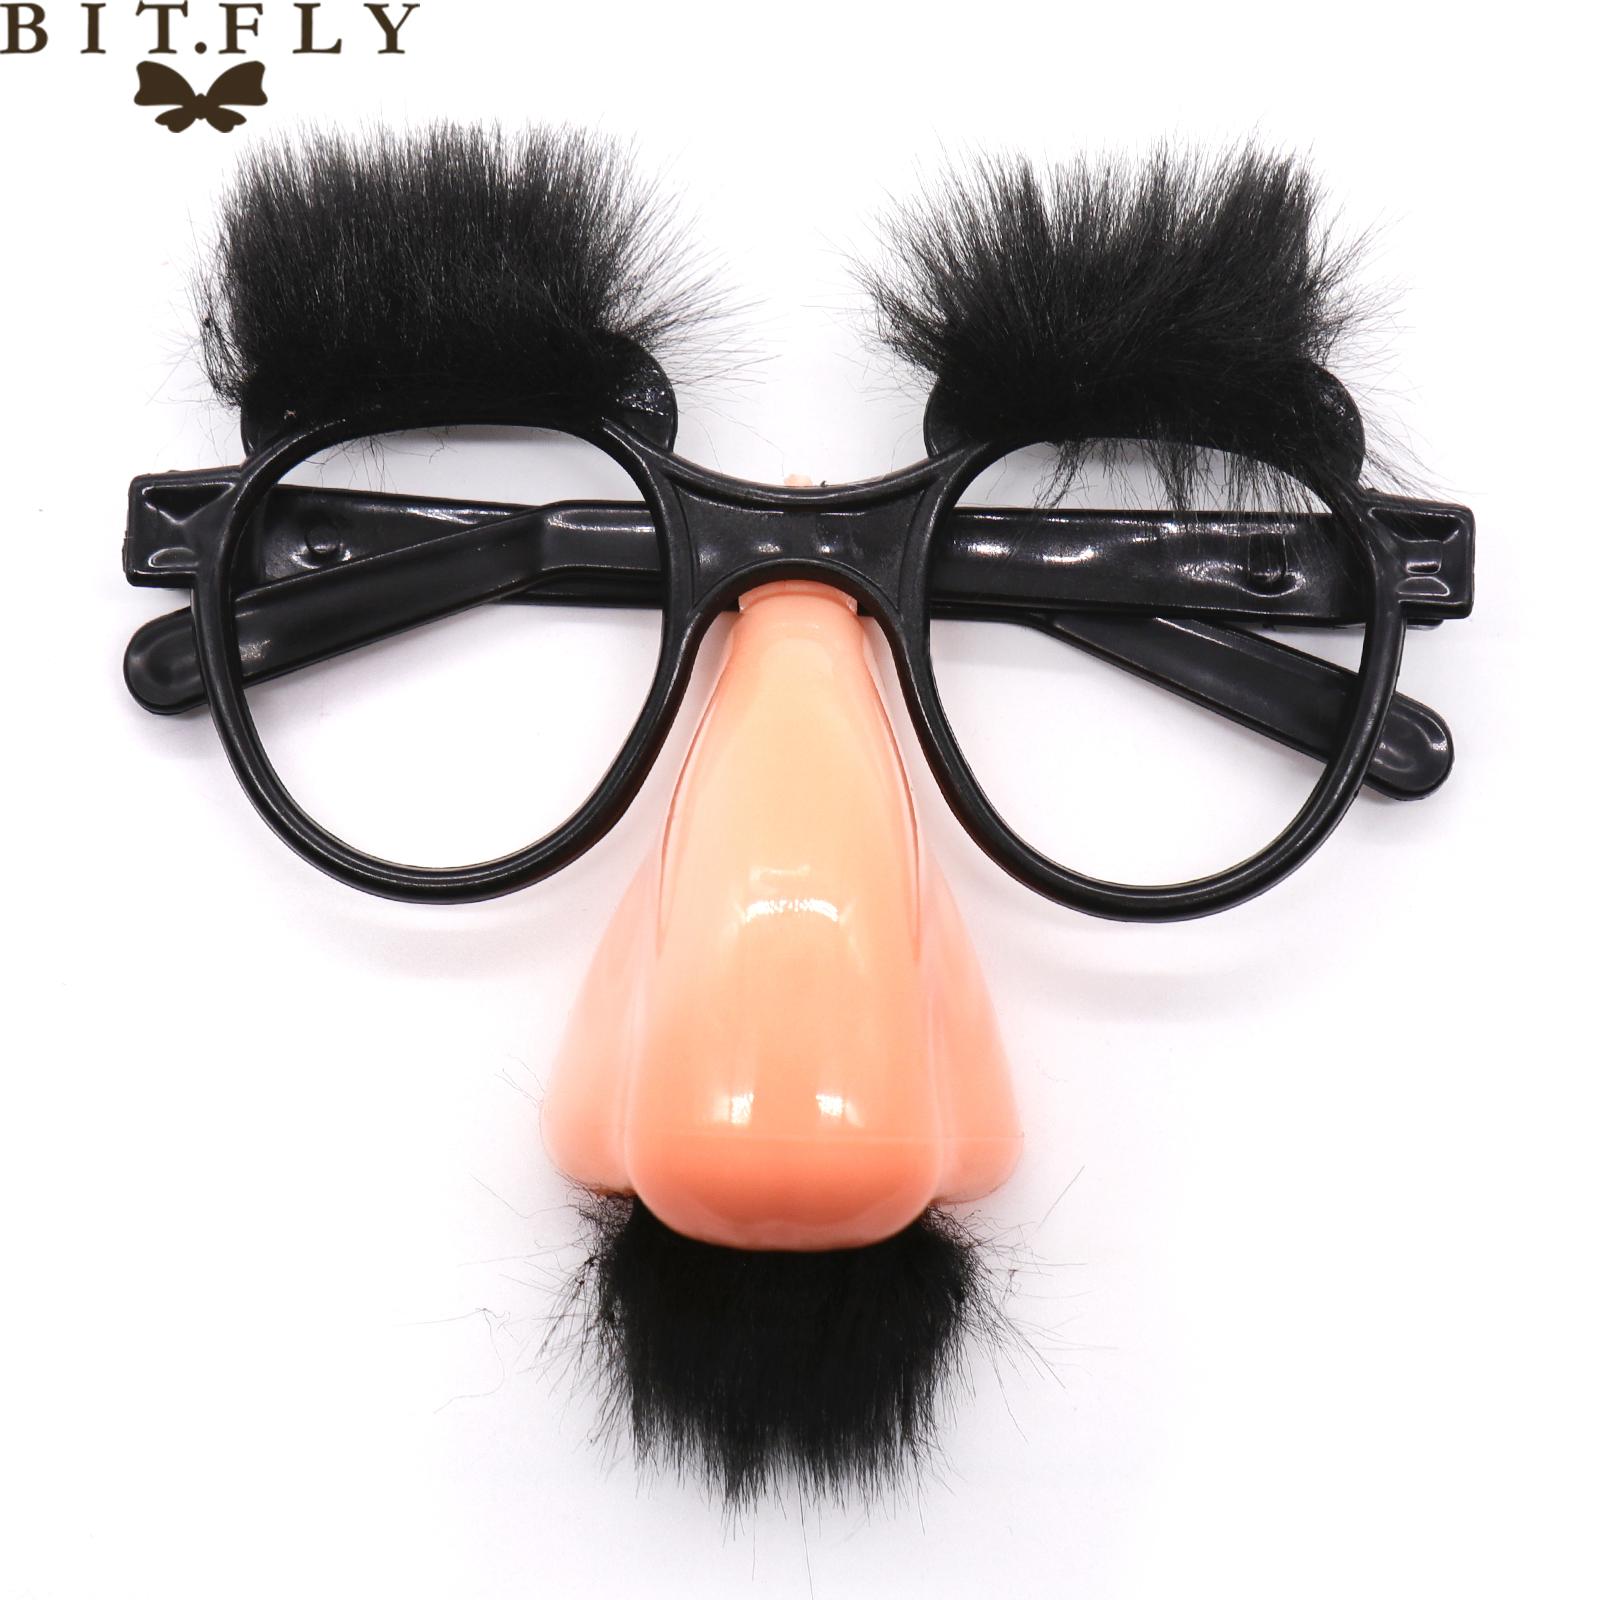 New Stylish Lovely Funny Foolish Nerd Halloween Black Old Man Glasses Eyebrow Nose with Mustache Costume Party decoration suppli